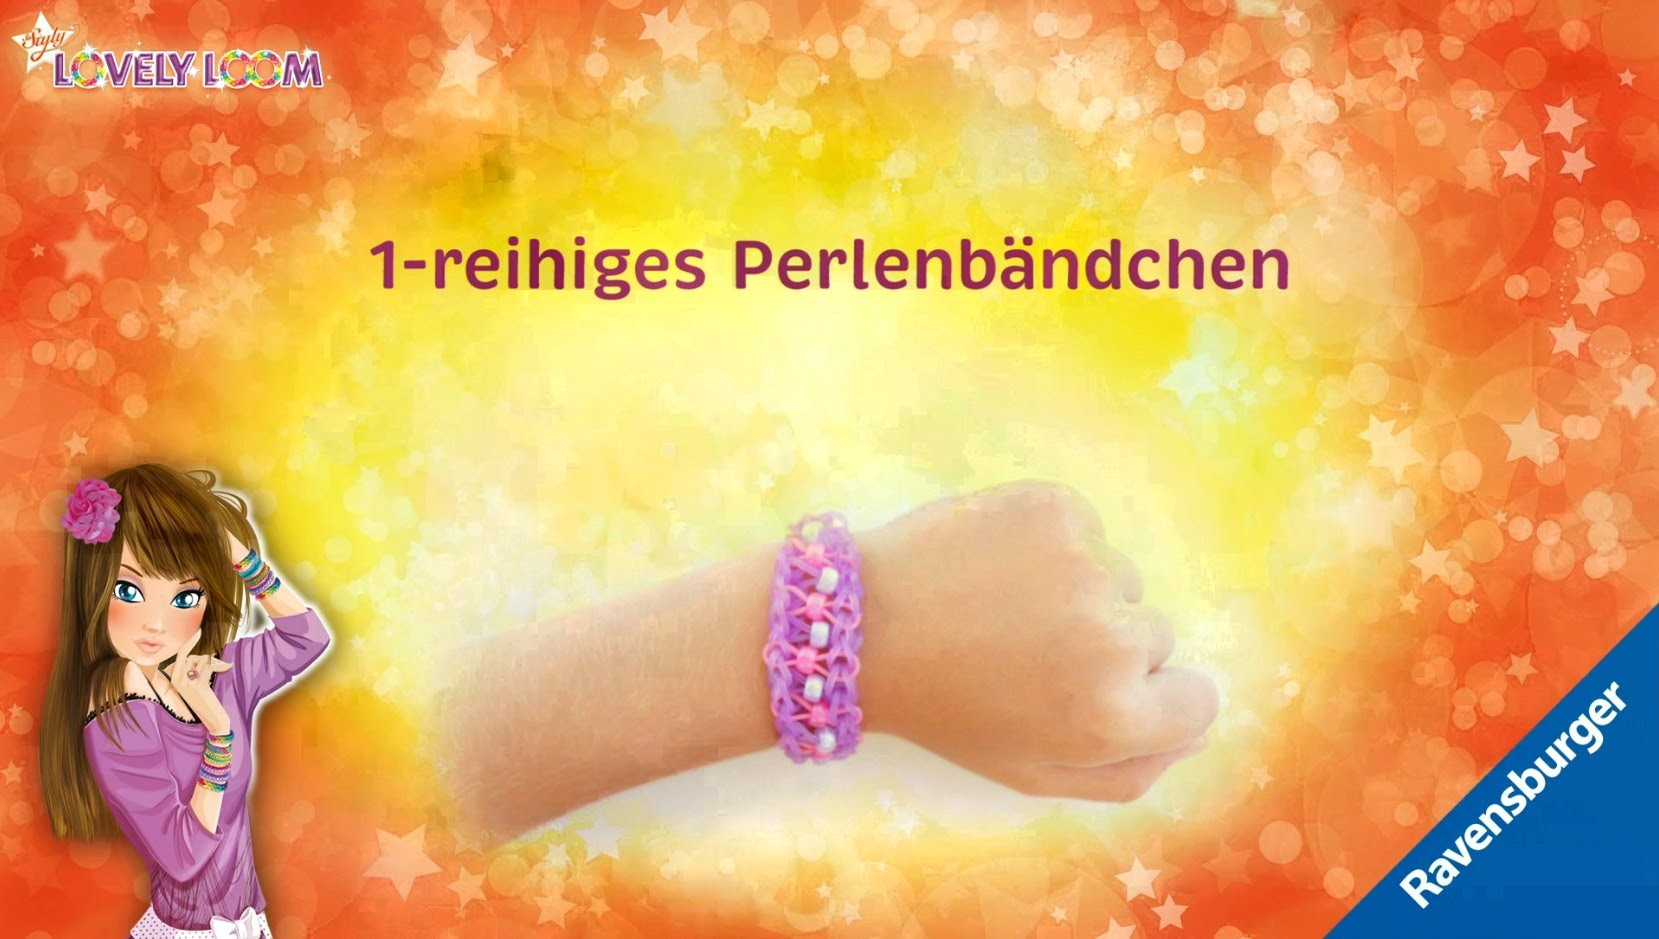 So Styly: Lovely Loom - 1-reihiges Perlenbändchen - Video-Anleitung